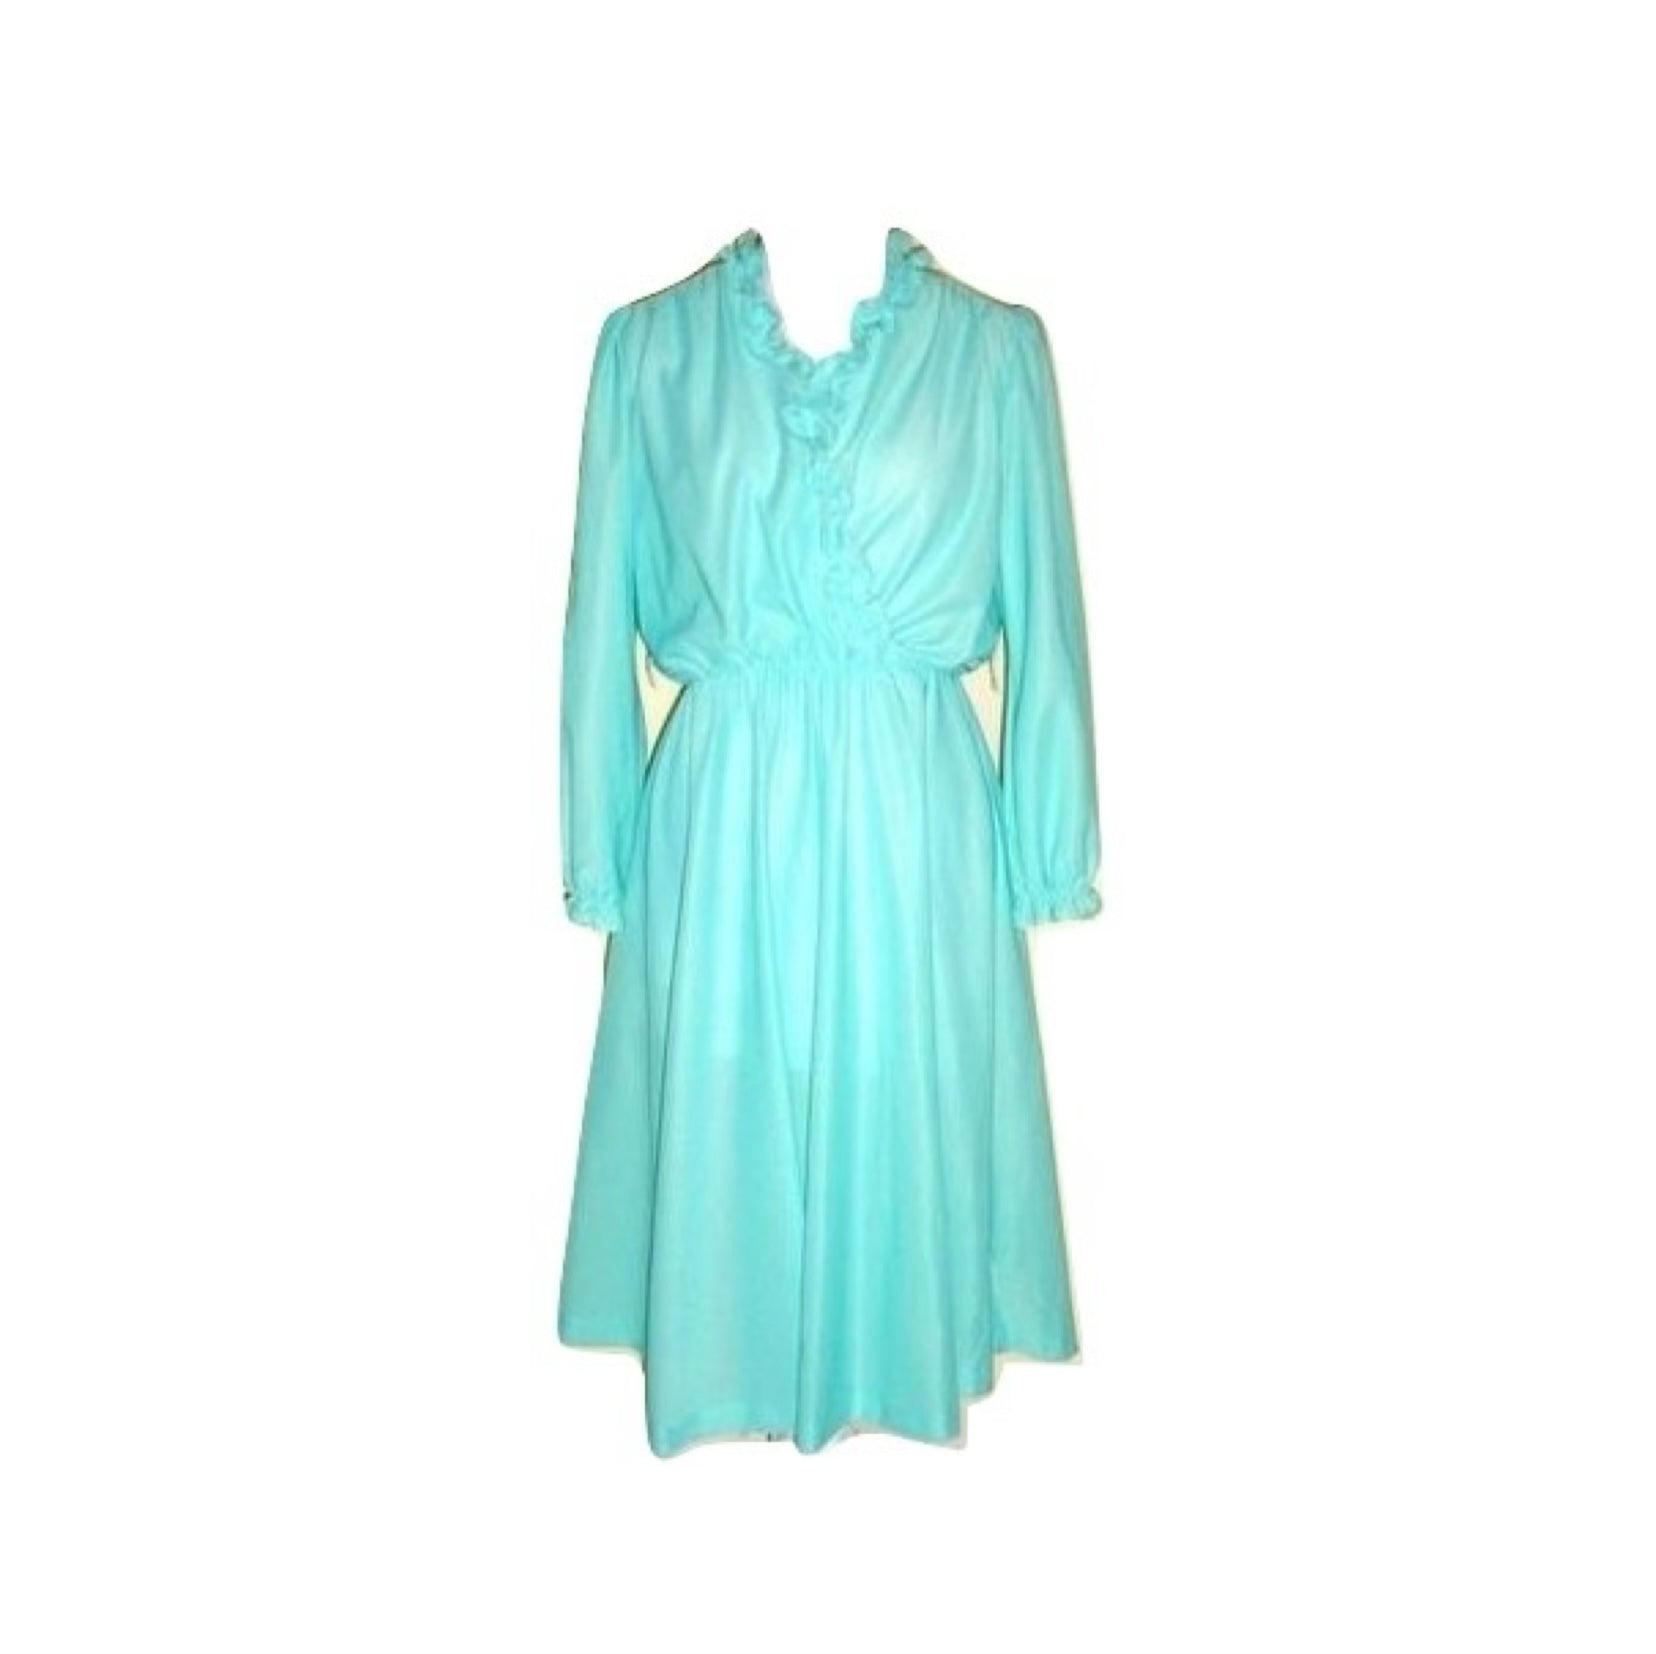 Vintage Anthony Richards  Light Teal Cocktail Brunch Medium 8 10